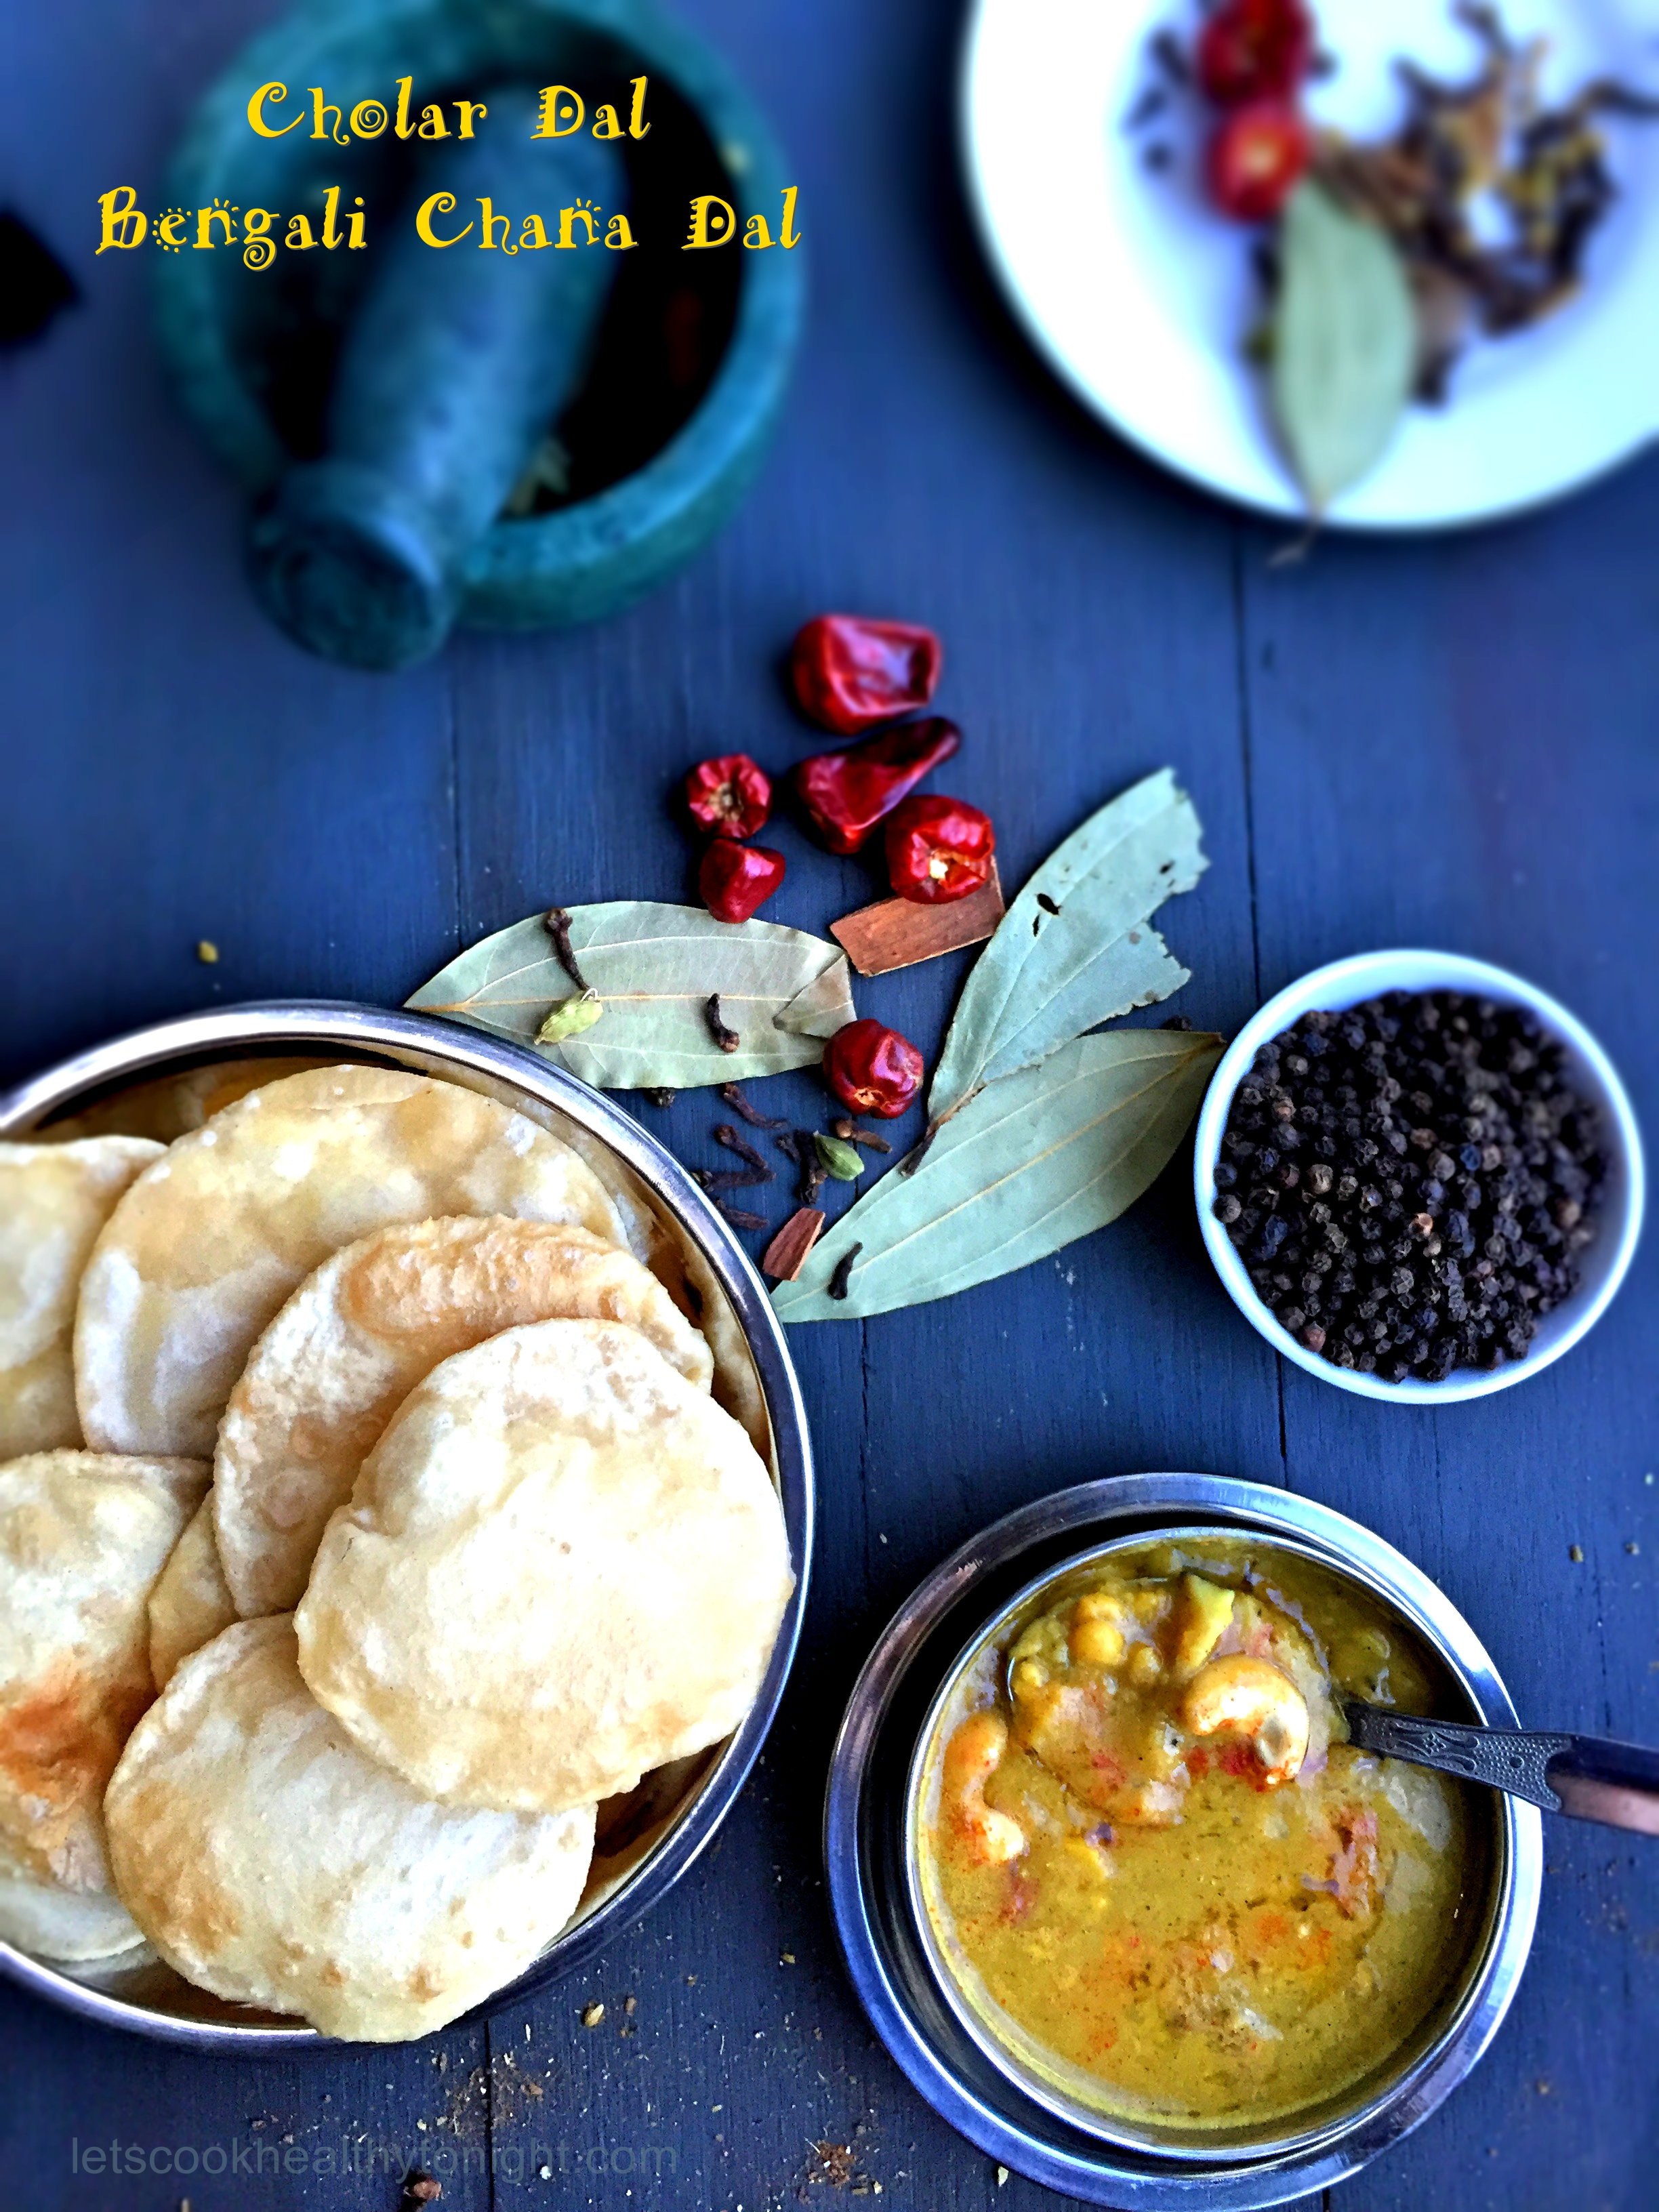 Cholar daal bengali chana dal lets cook healthy tonight there is a little story involved in my learning cholar dal recipe many years back my husband was working in a company which was owned by a bengali guy forumfinder Images